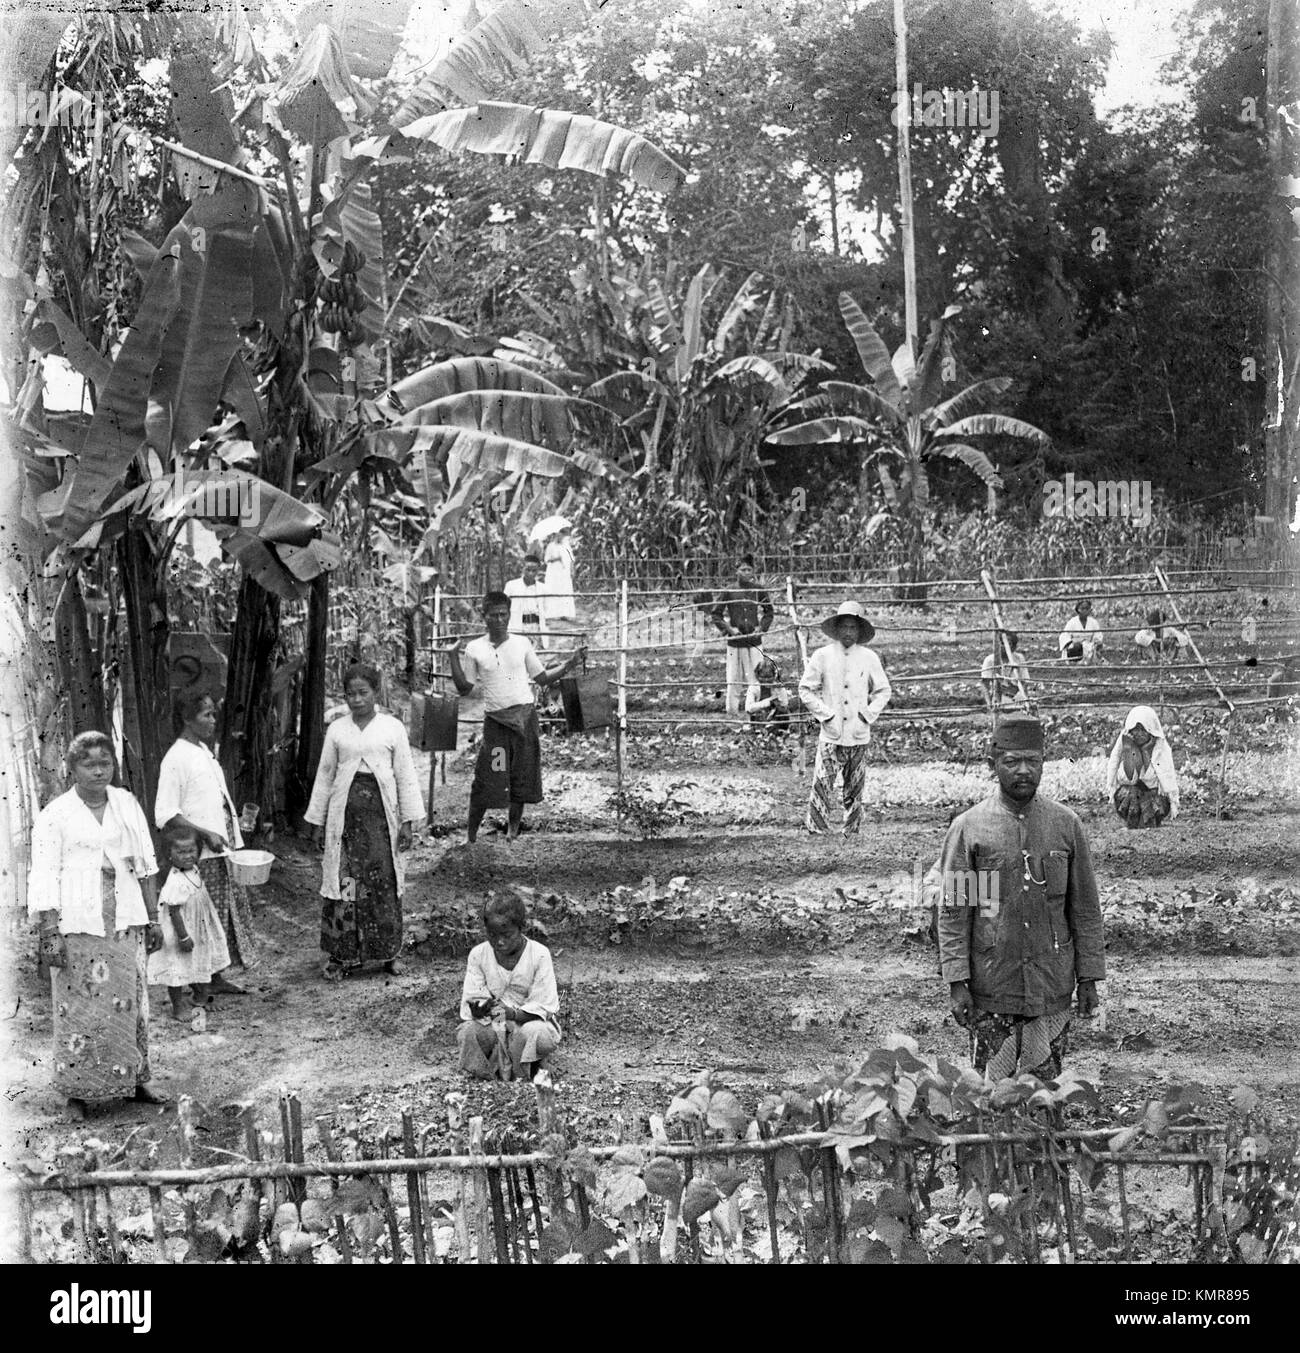 Plantation workers farming in Java Indonesia during Dutch Colonial Period of the Dutch East India Company 1921 - Stock Image